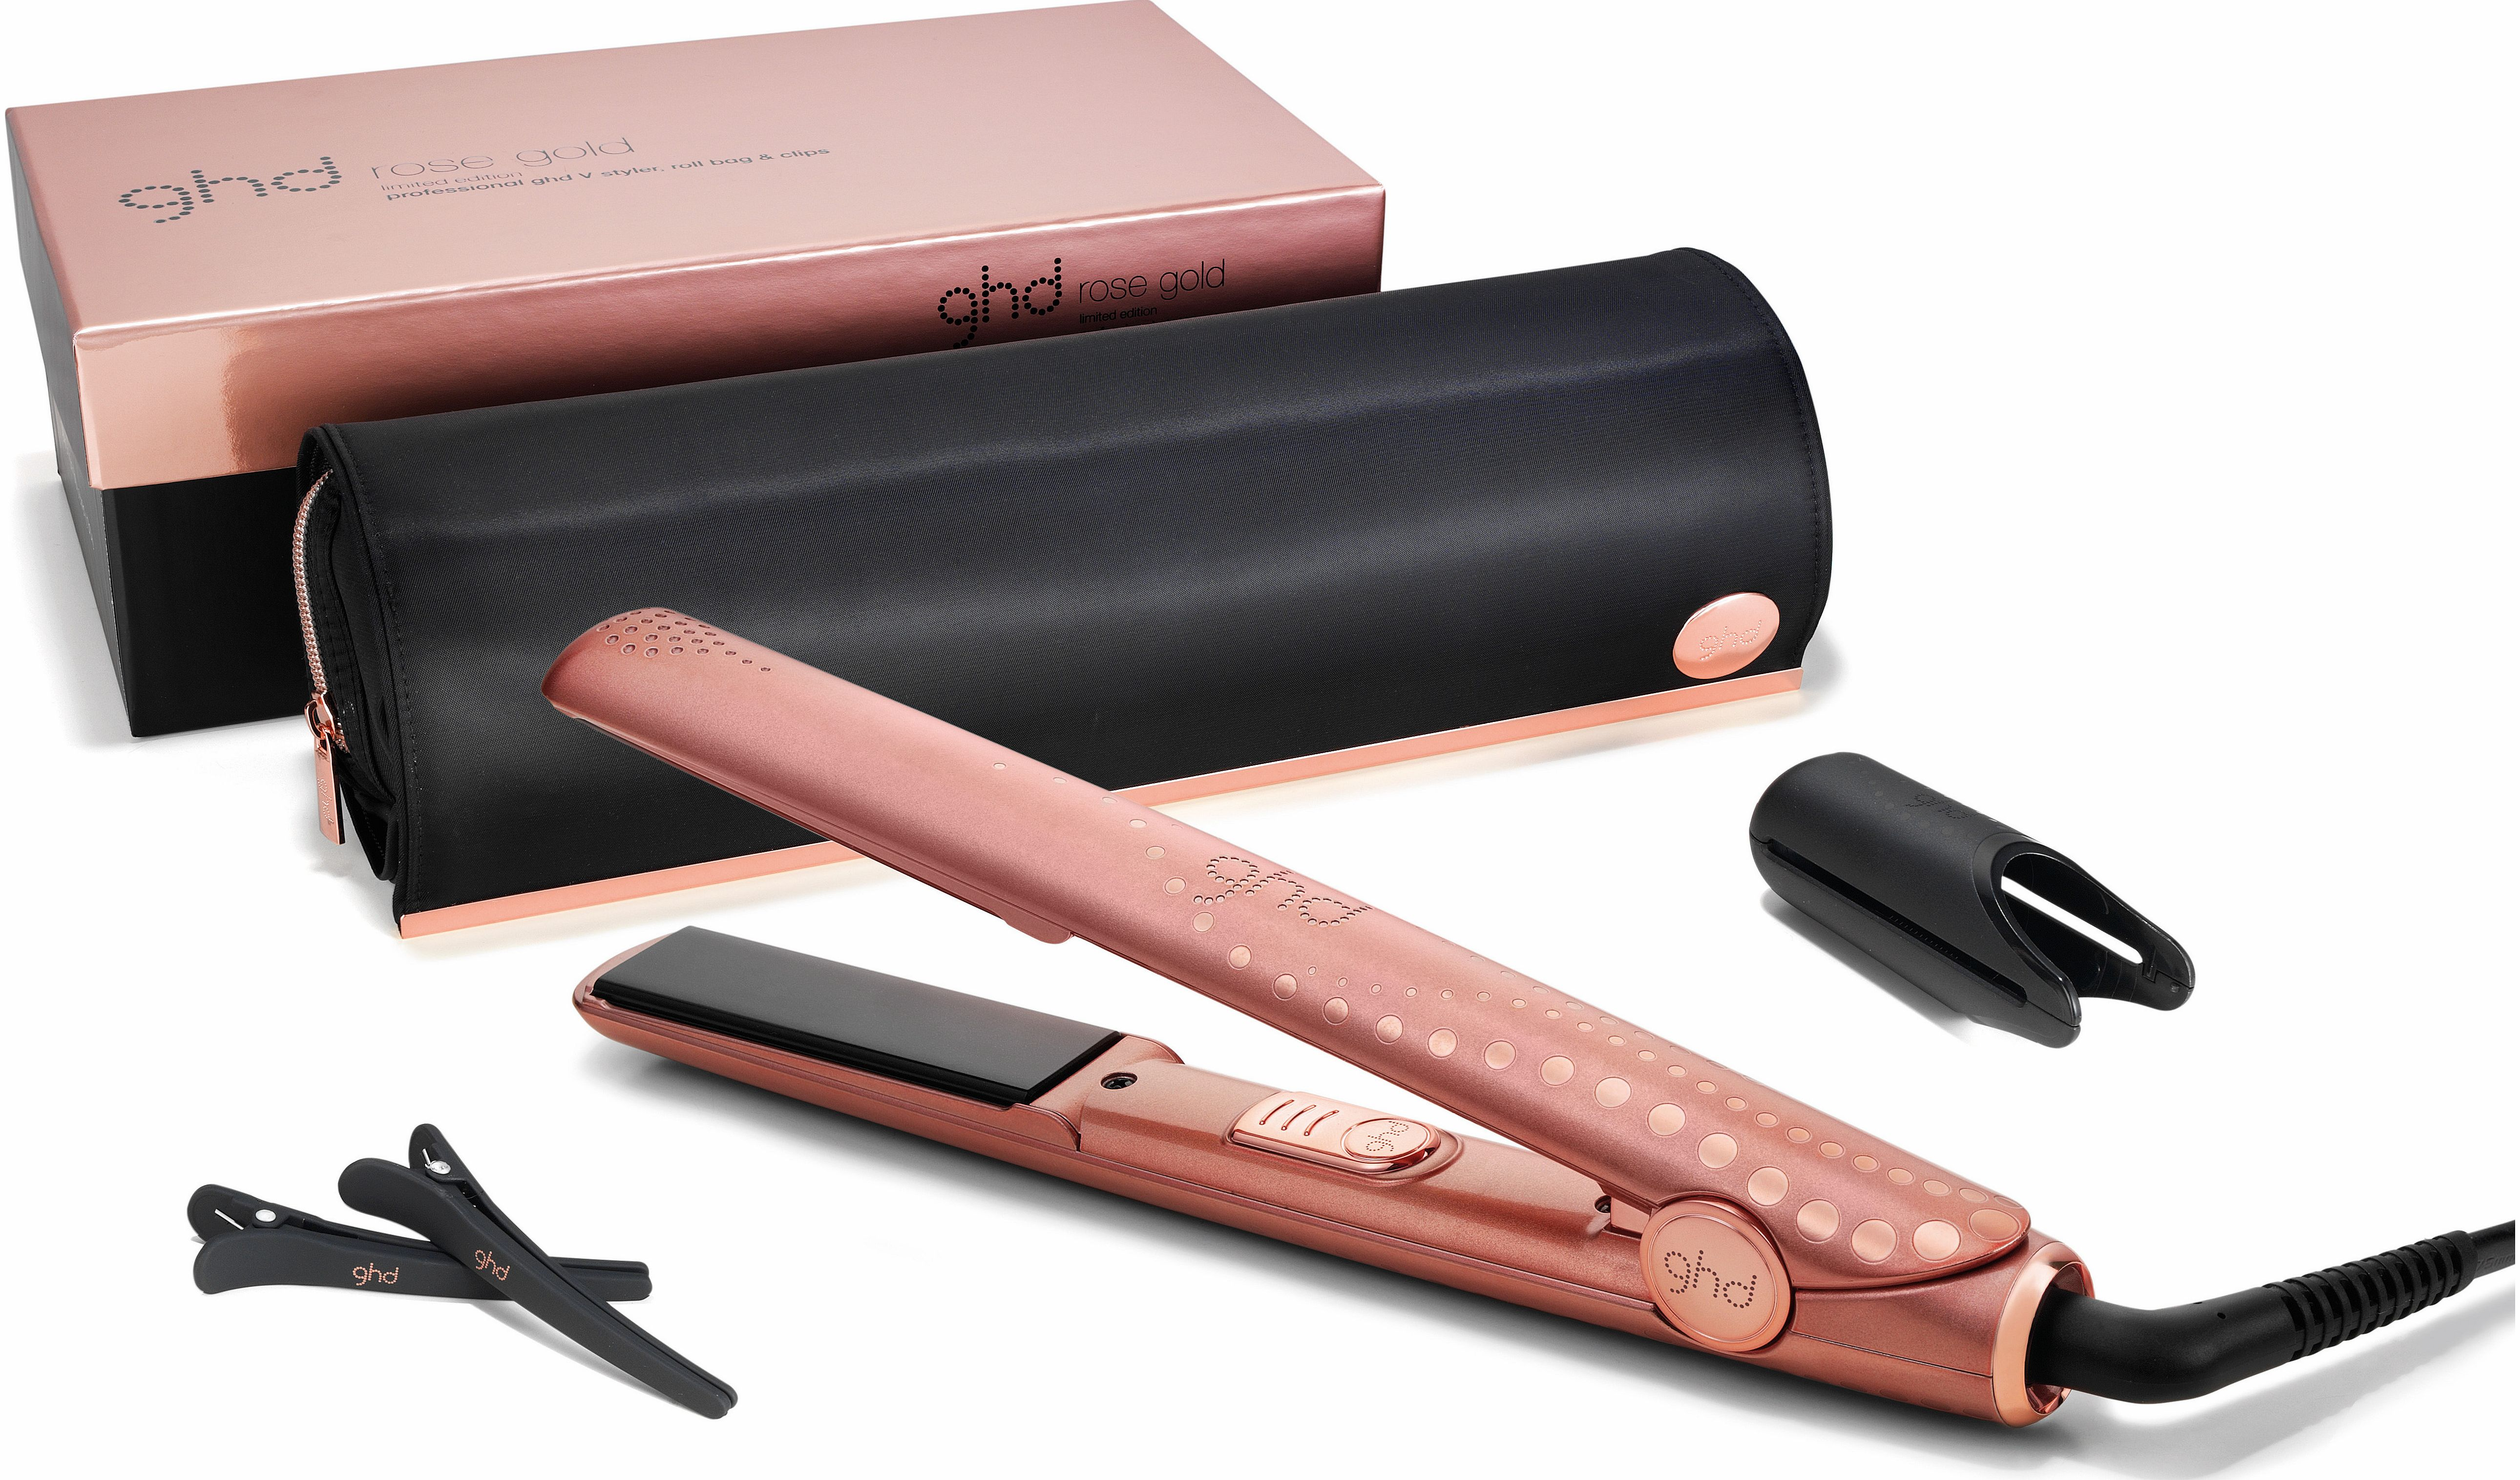 ghd v rose gold styler beauty product review compare prices buy online. Black Bedroom Furniture Sets. Home Design Ideas